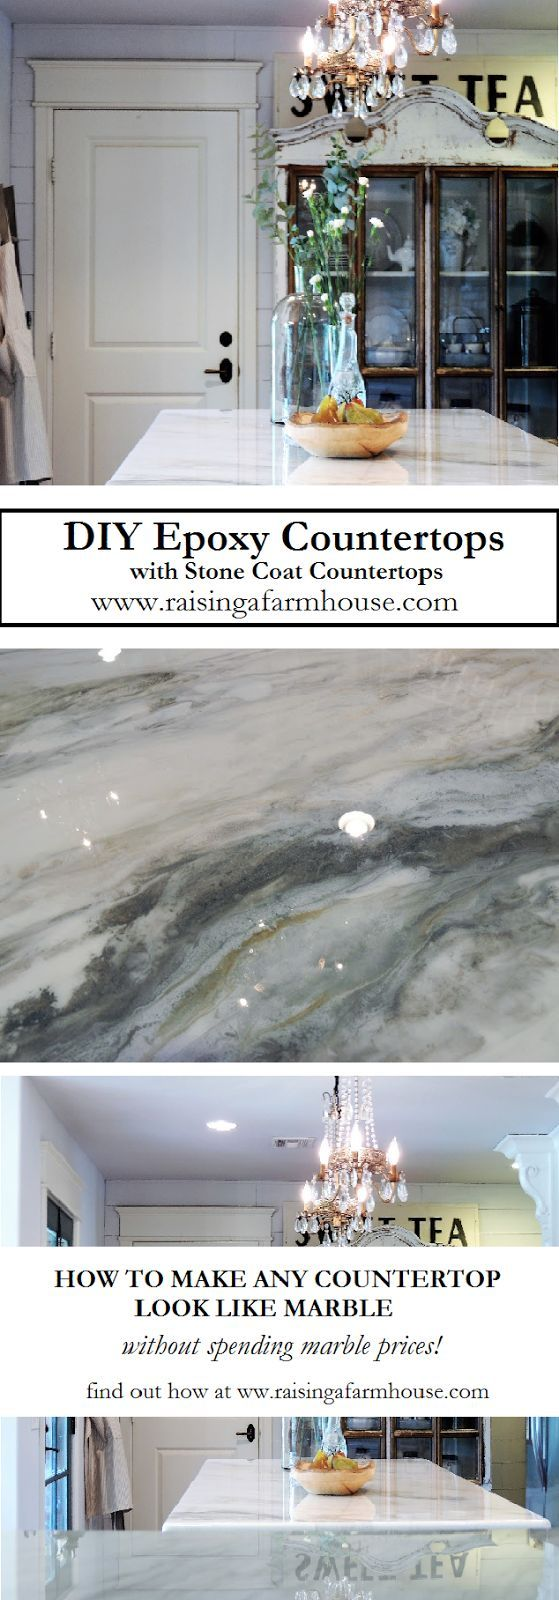 DIY Epoxy Countertops is a great alternative for covering ugly countertops, not only are they beautiful, they are scratch and stain resistant, stain proof, food grade, seamless and 100% customizable! Visit Raising a Farmhouse for her review on this amazin